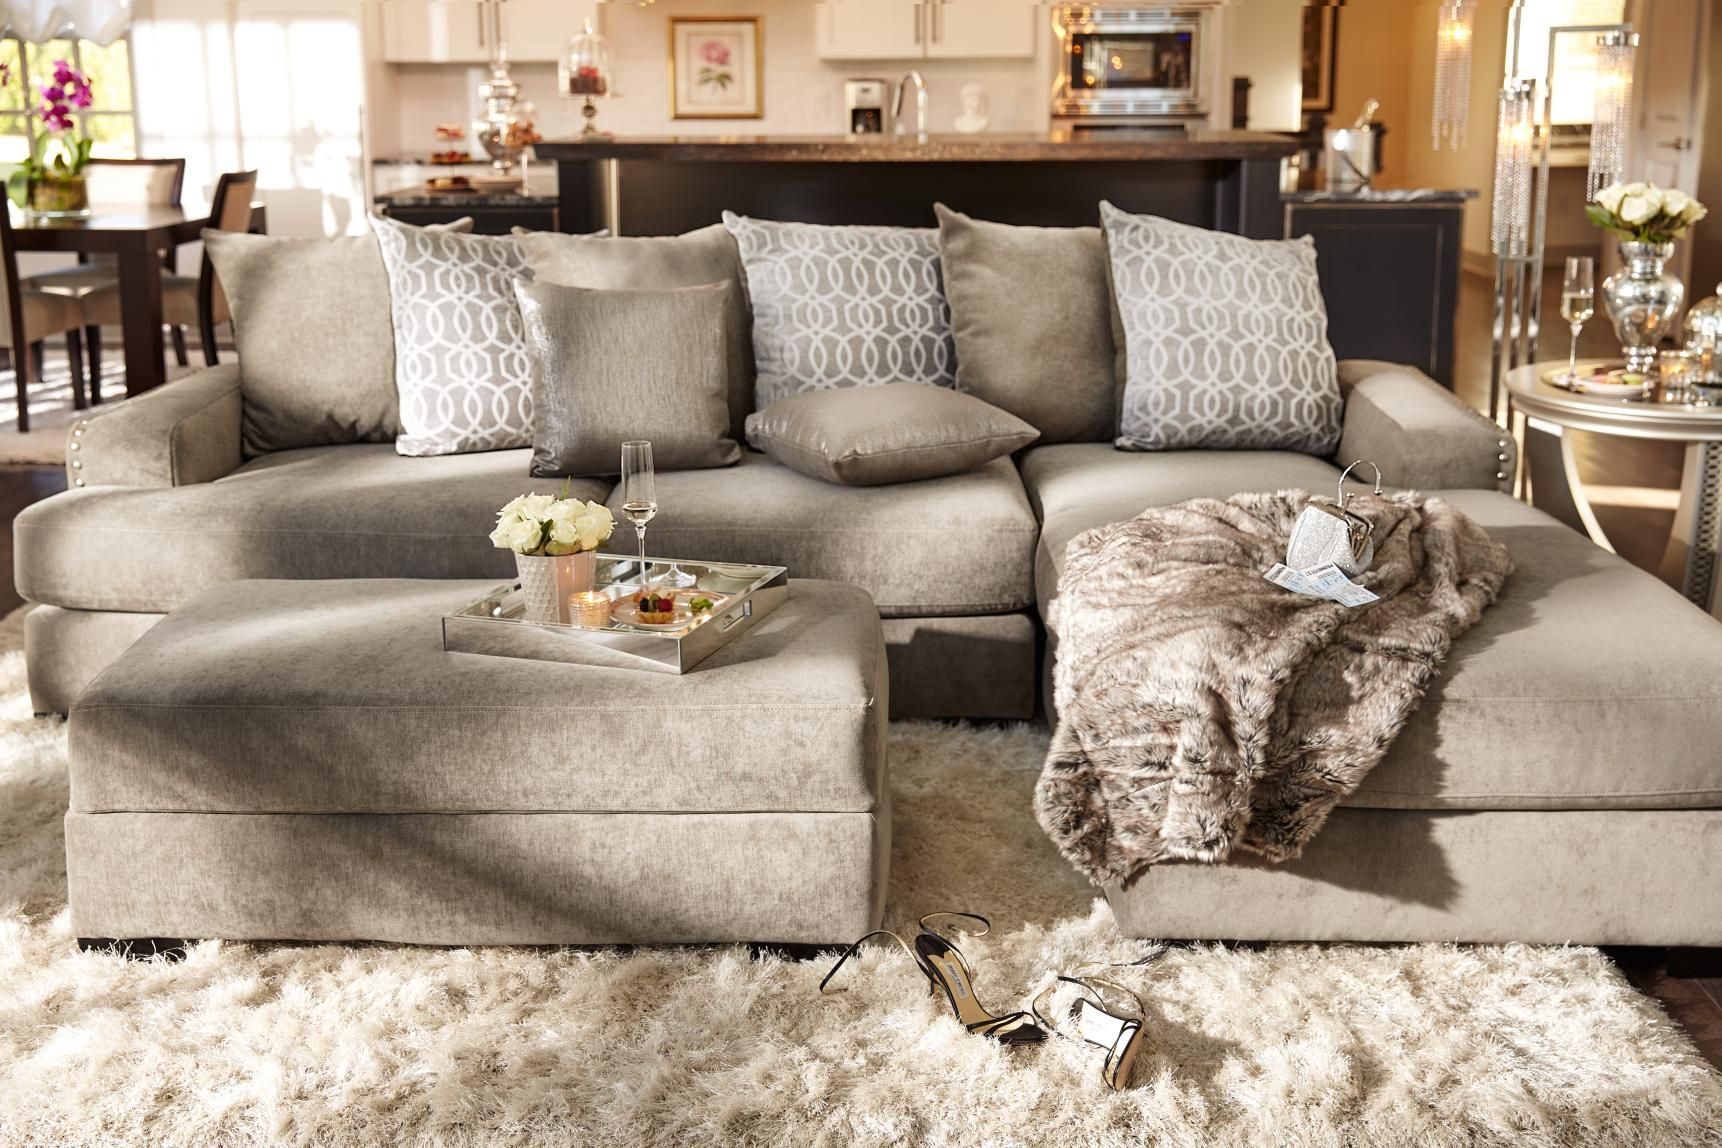 glam sofa set via gesu versace stay on trend with the uber tempo collection a